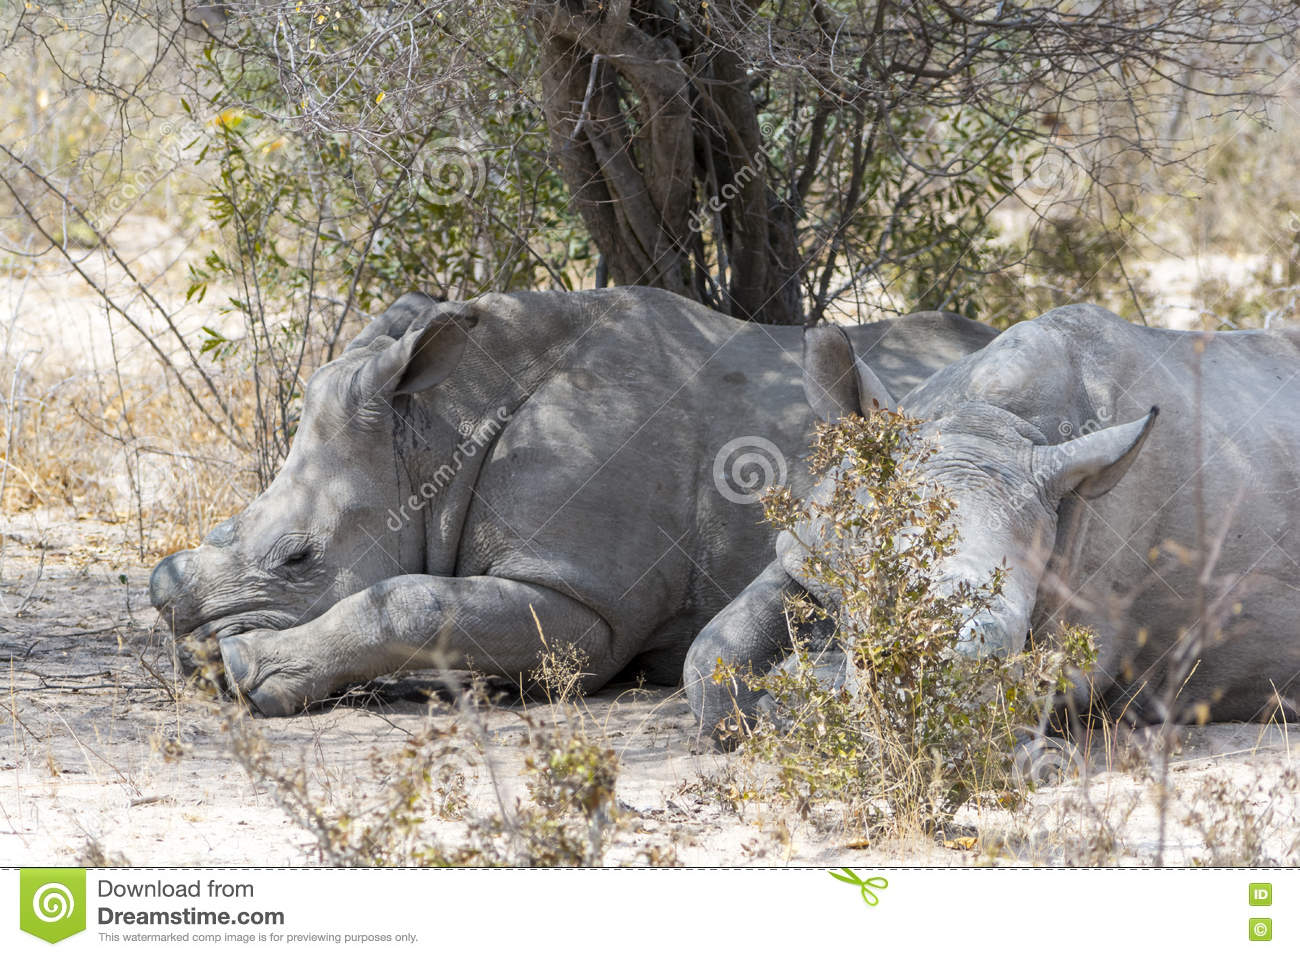 rhinoceros and kruger national park Kruger national park relocated four rhinoceroses from a high-risk poaching area to a safer zone as part of ongoing strategic rhinoceros management plan stefan heunis/afp/getty other than that .